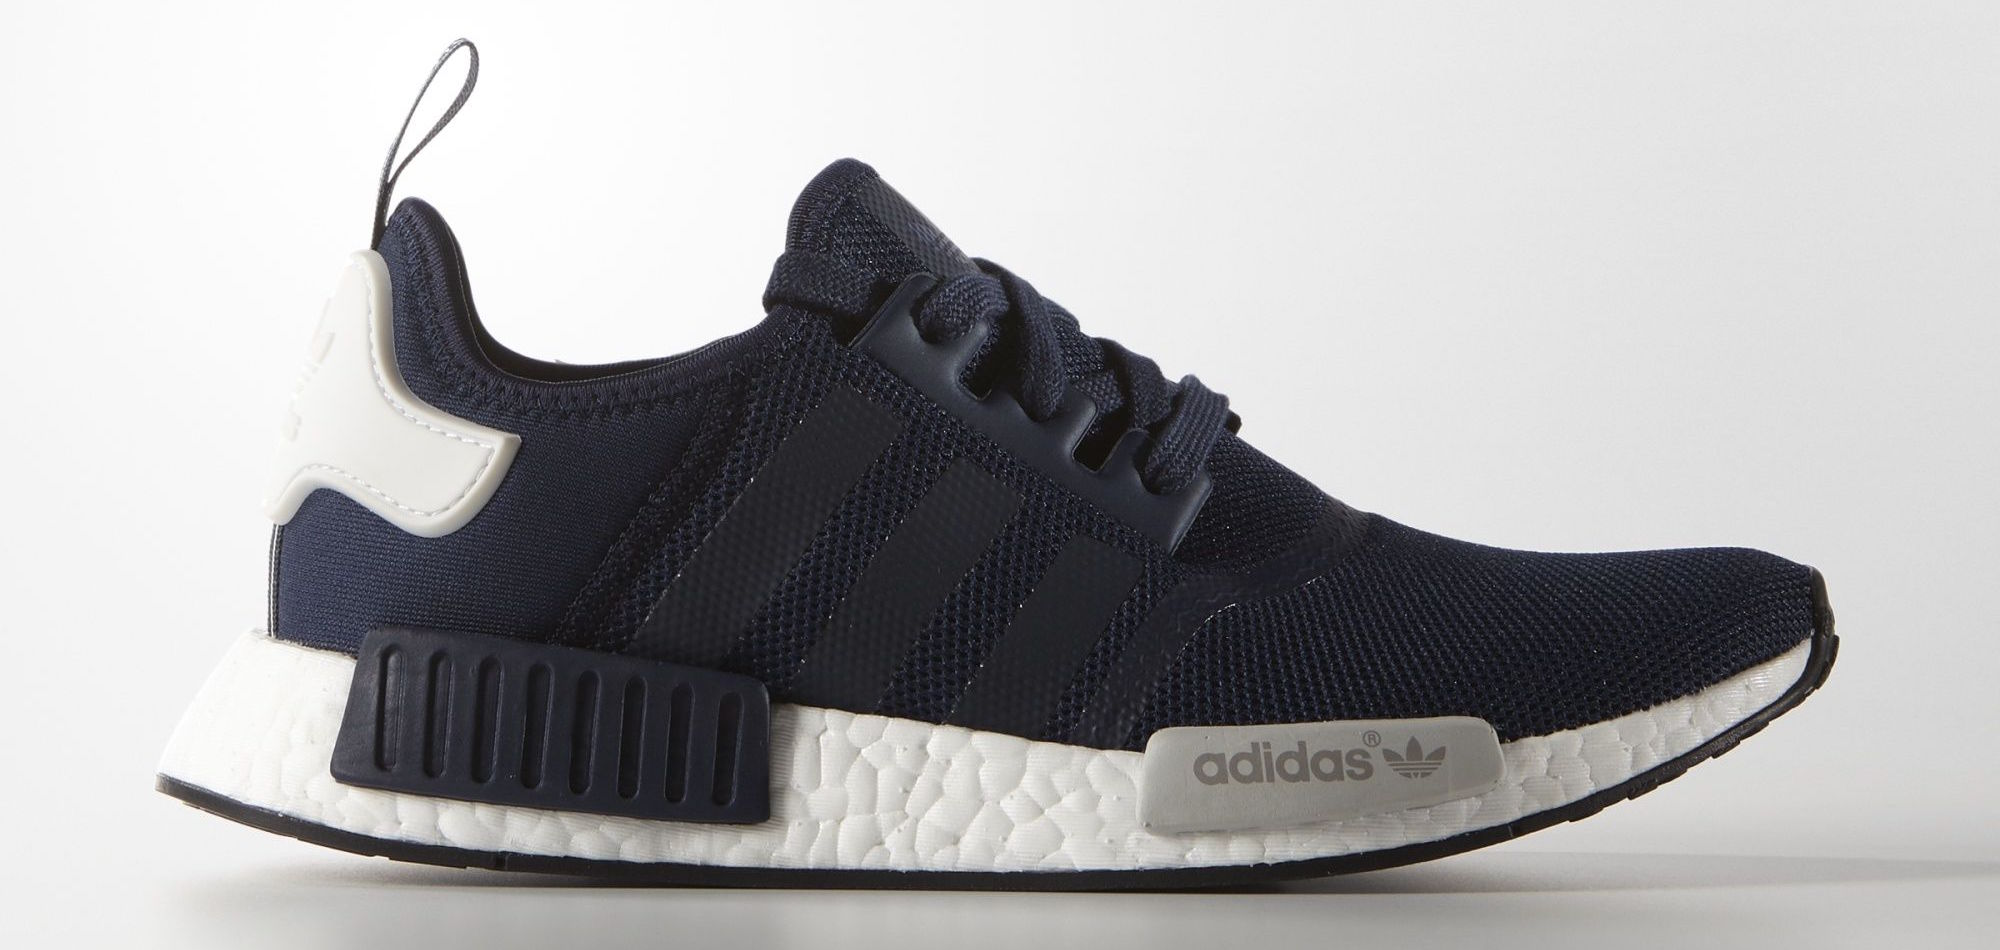 adidas NMD Runner R1 Collegiate Navy Blue